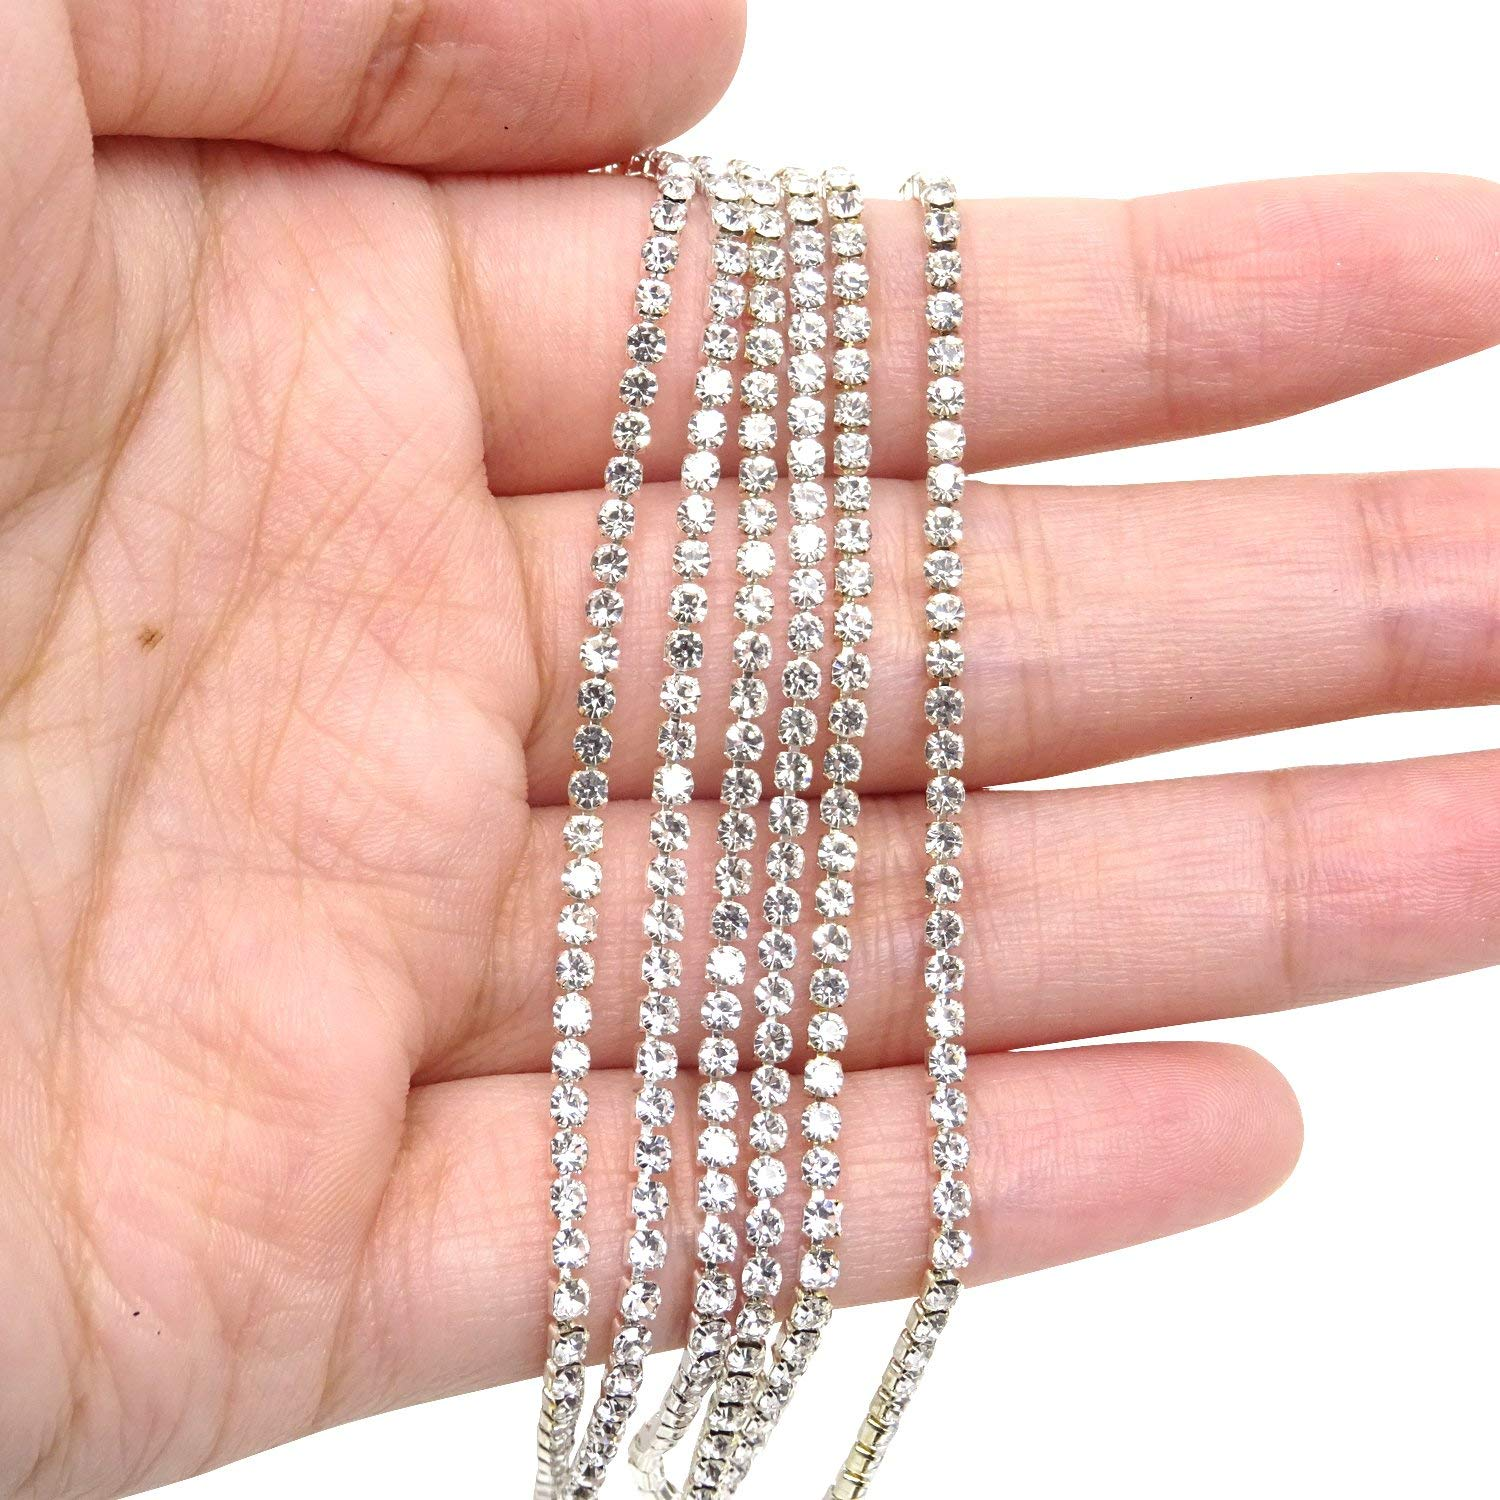 1 Roll 10 Yards Rhinestone Trim Crystal Cup Chain in Silver Setting Casing Clear SS12 3mm